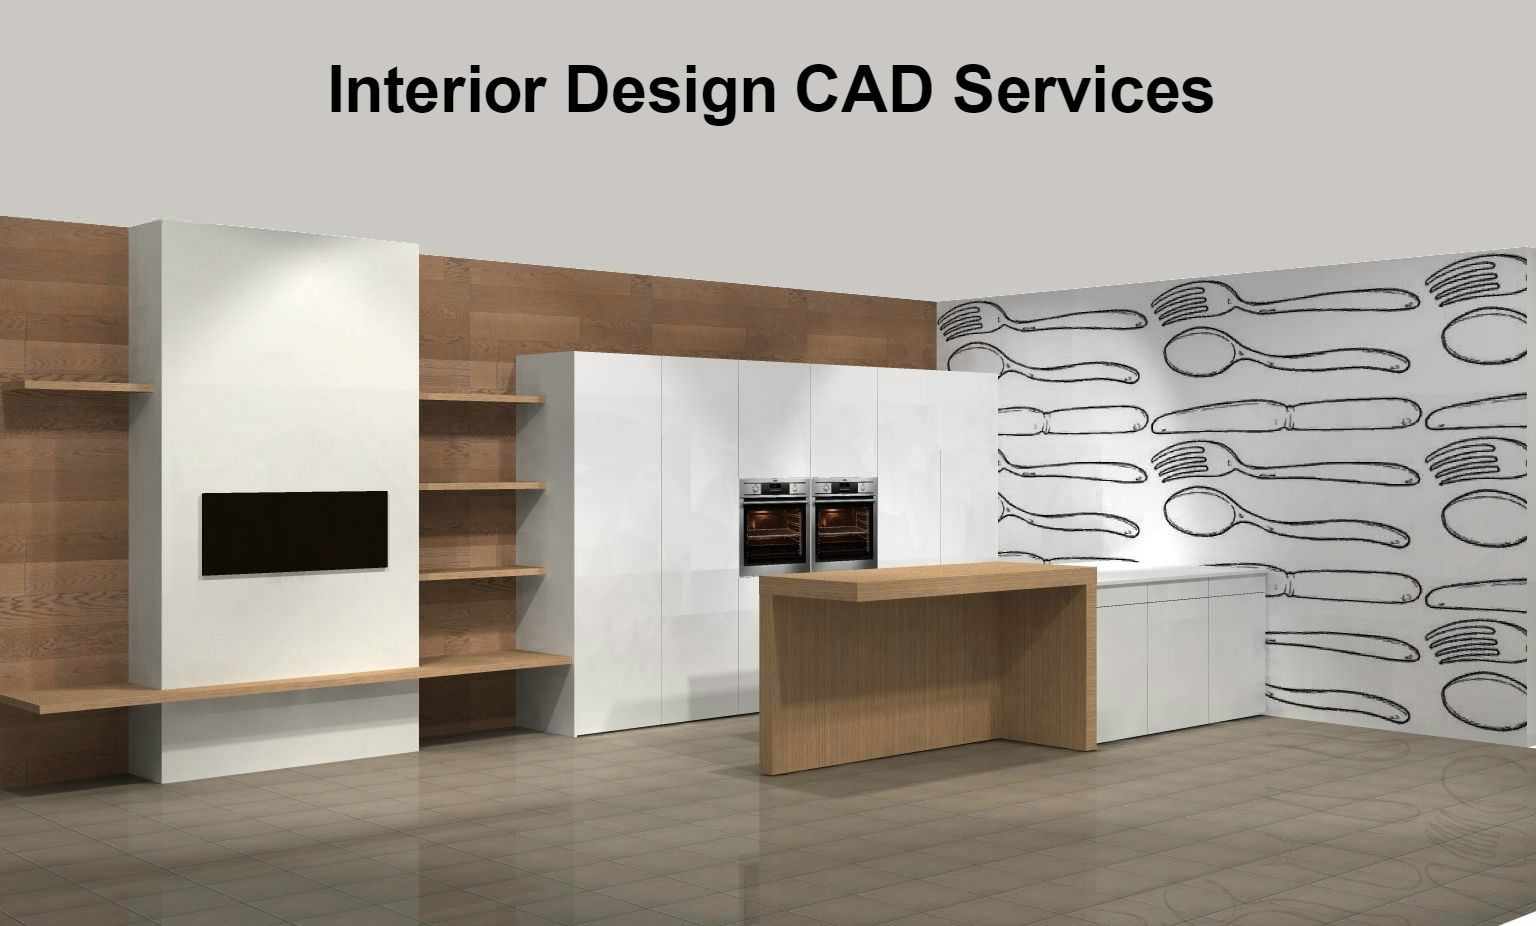 Exceptionnel Colors For Interior Design CAD Services